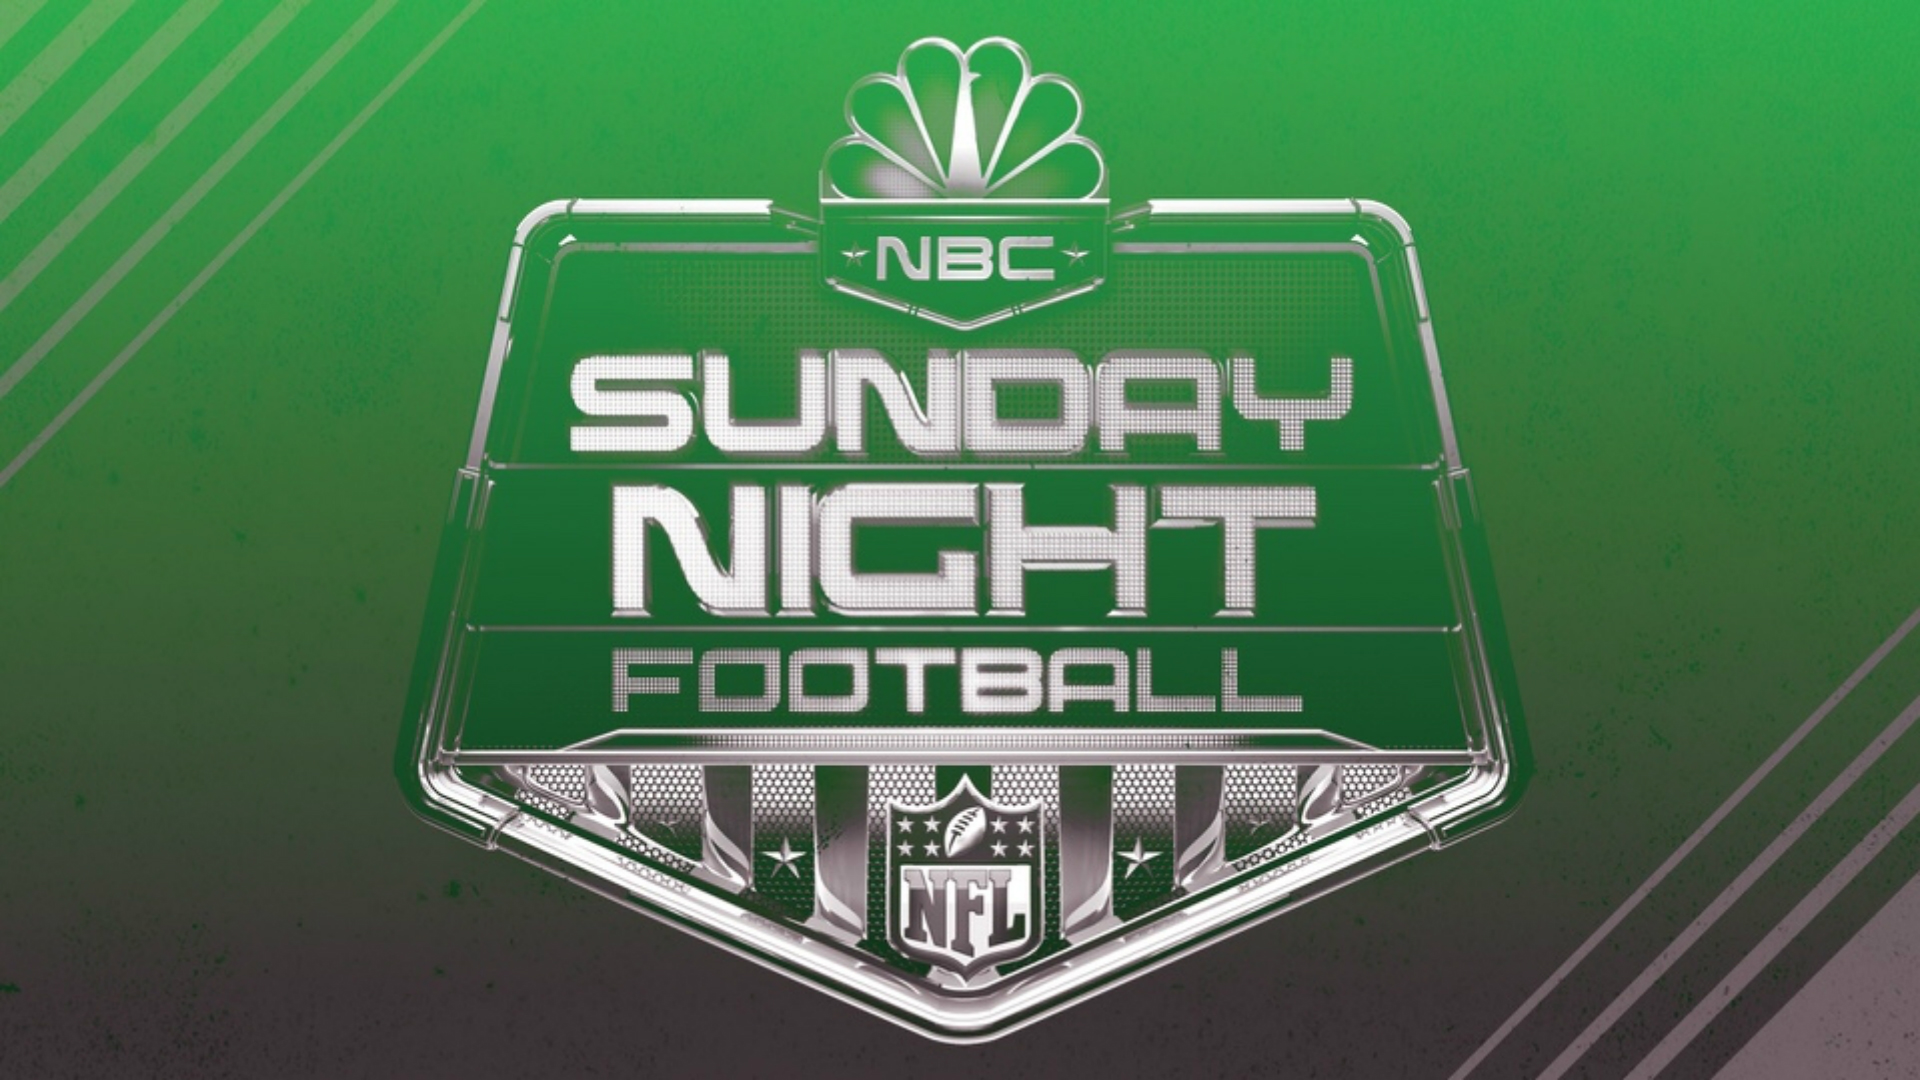 Sunday-night-football-snf-091717-ftrjpg_x5jv4rql63b1l4s80j6zyh0l